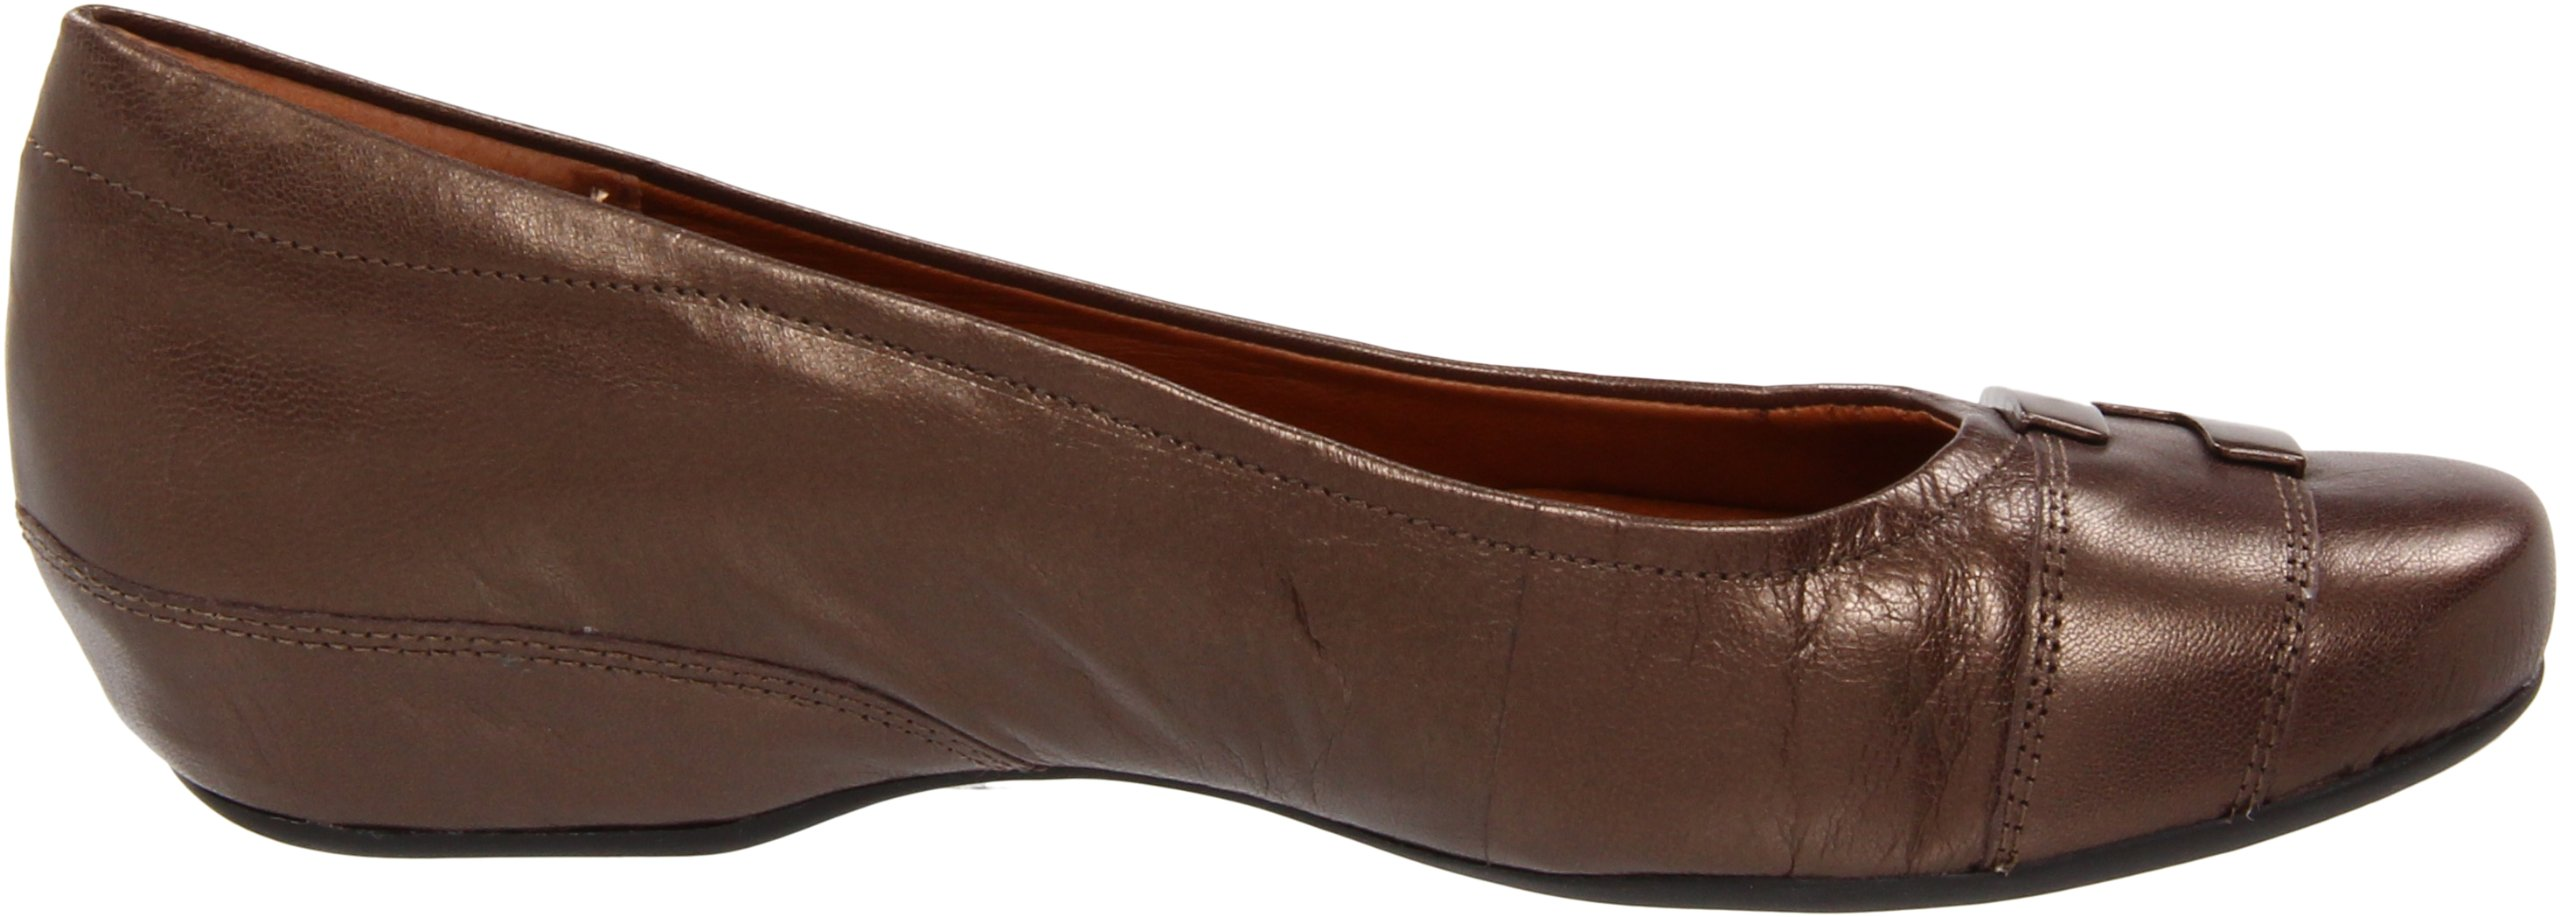 Clarks Women's Concert Choir Dress Shoes,Brown Metallic Leather,5 M US by CLARKS (Image #6)